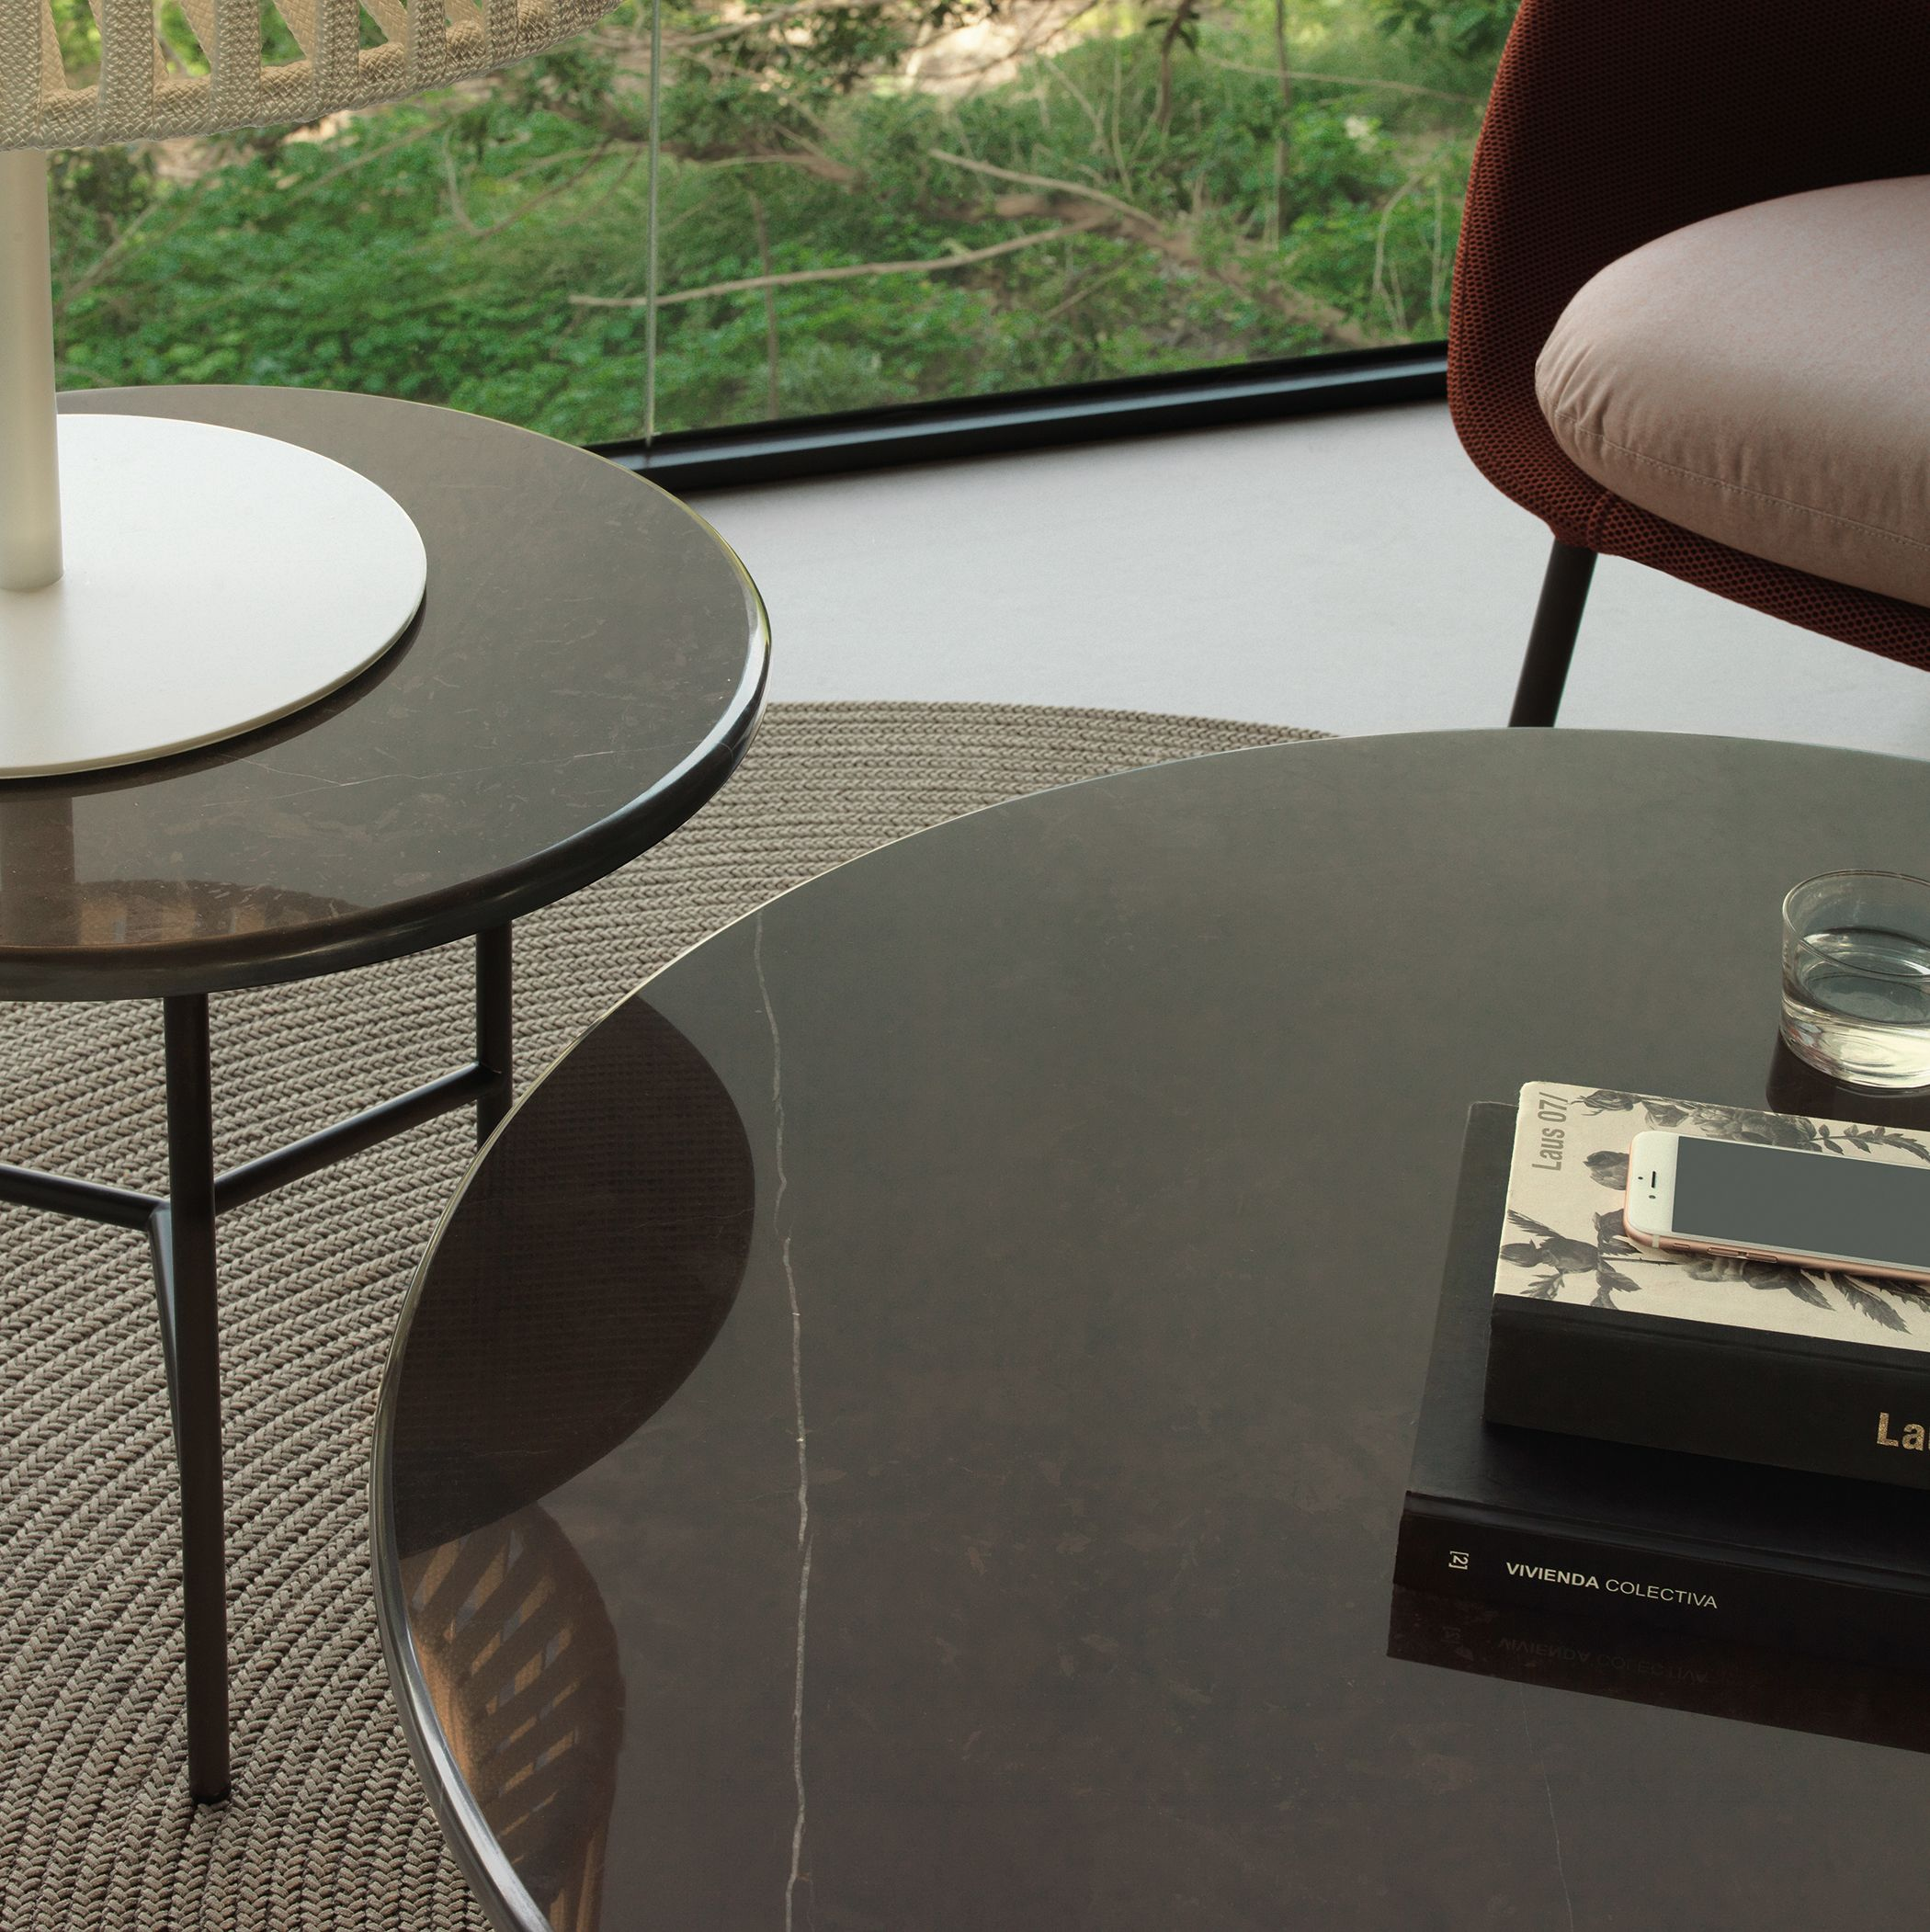 Grada side coffe tables by Lievore Altherr Molina Stainless steel